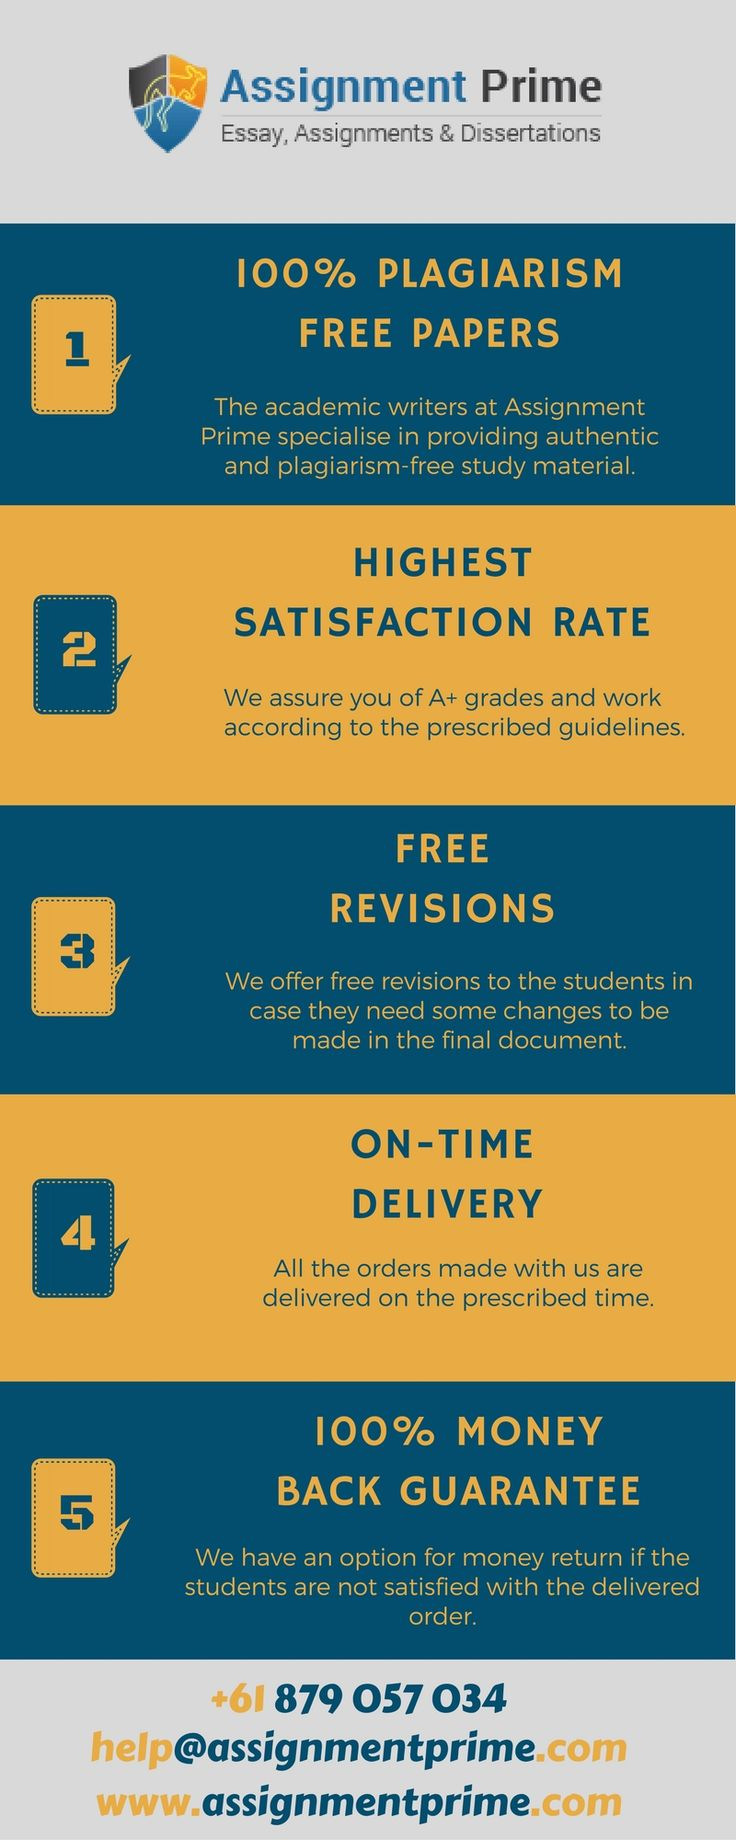 best assignment writing service ideas writing  assignment prime is the most trusted online assignment writing service provider in students who